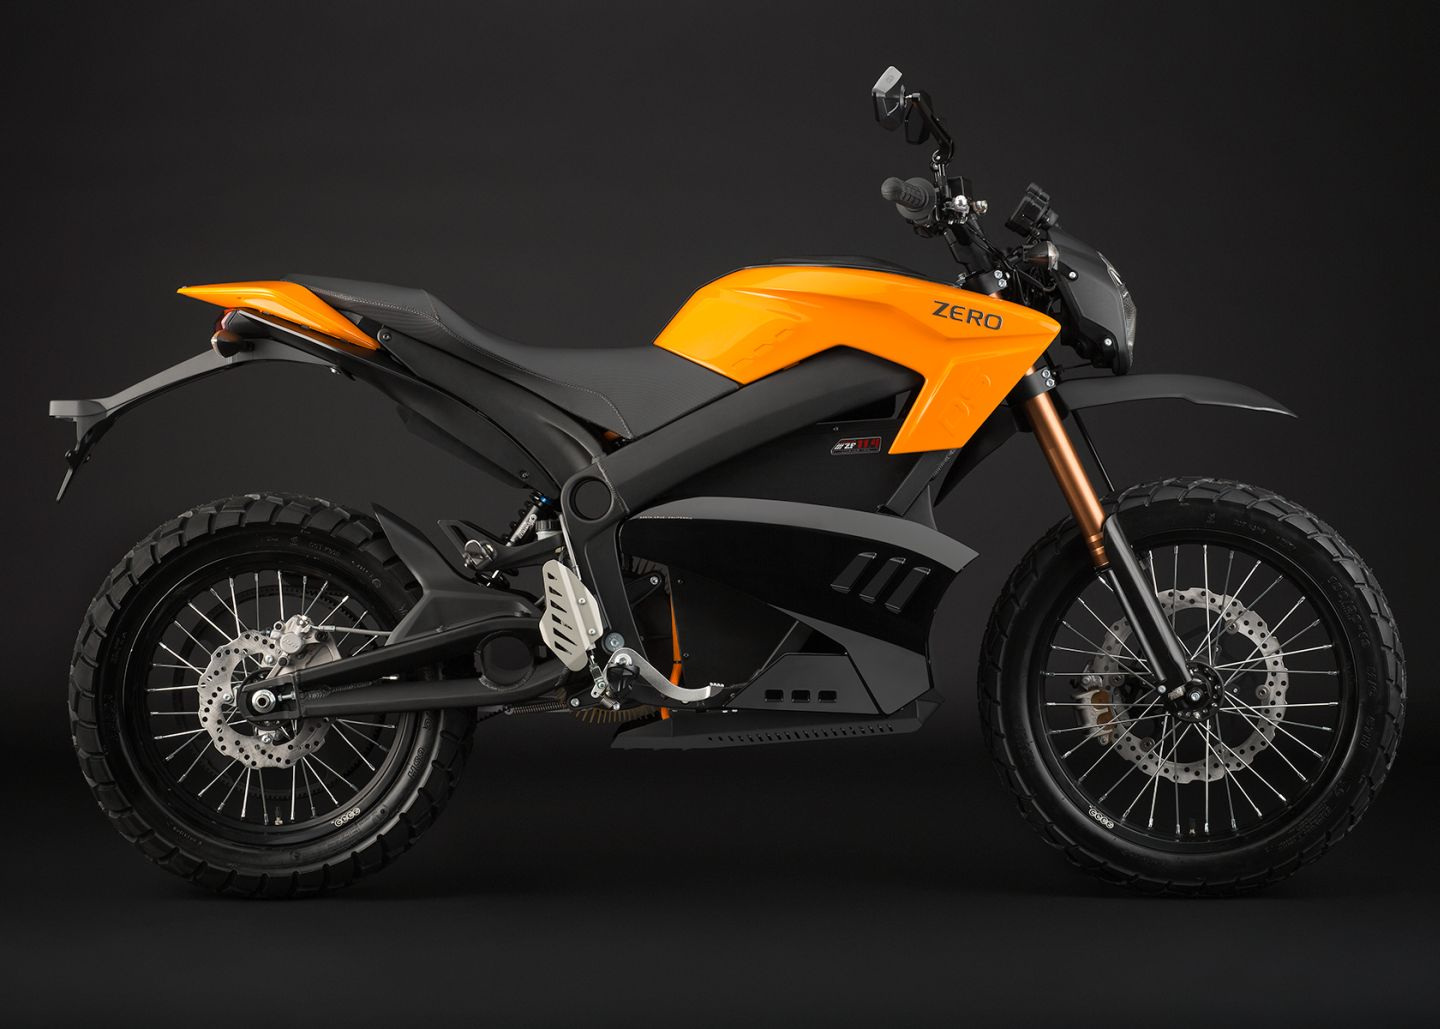 zero ds electric motorcycle from zero motorcycles tech all. Black Bedroom Furniture Sets. Home Design Ideas